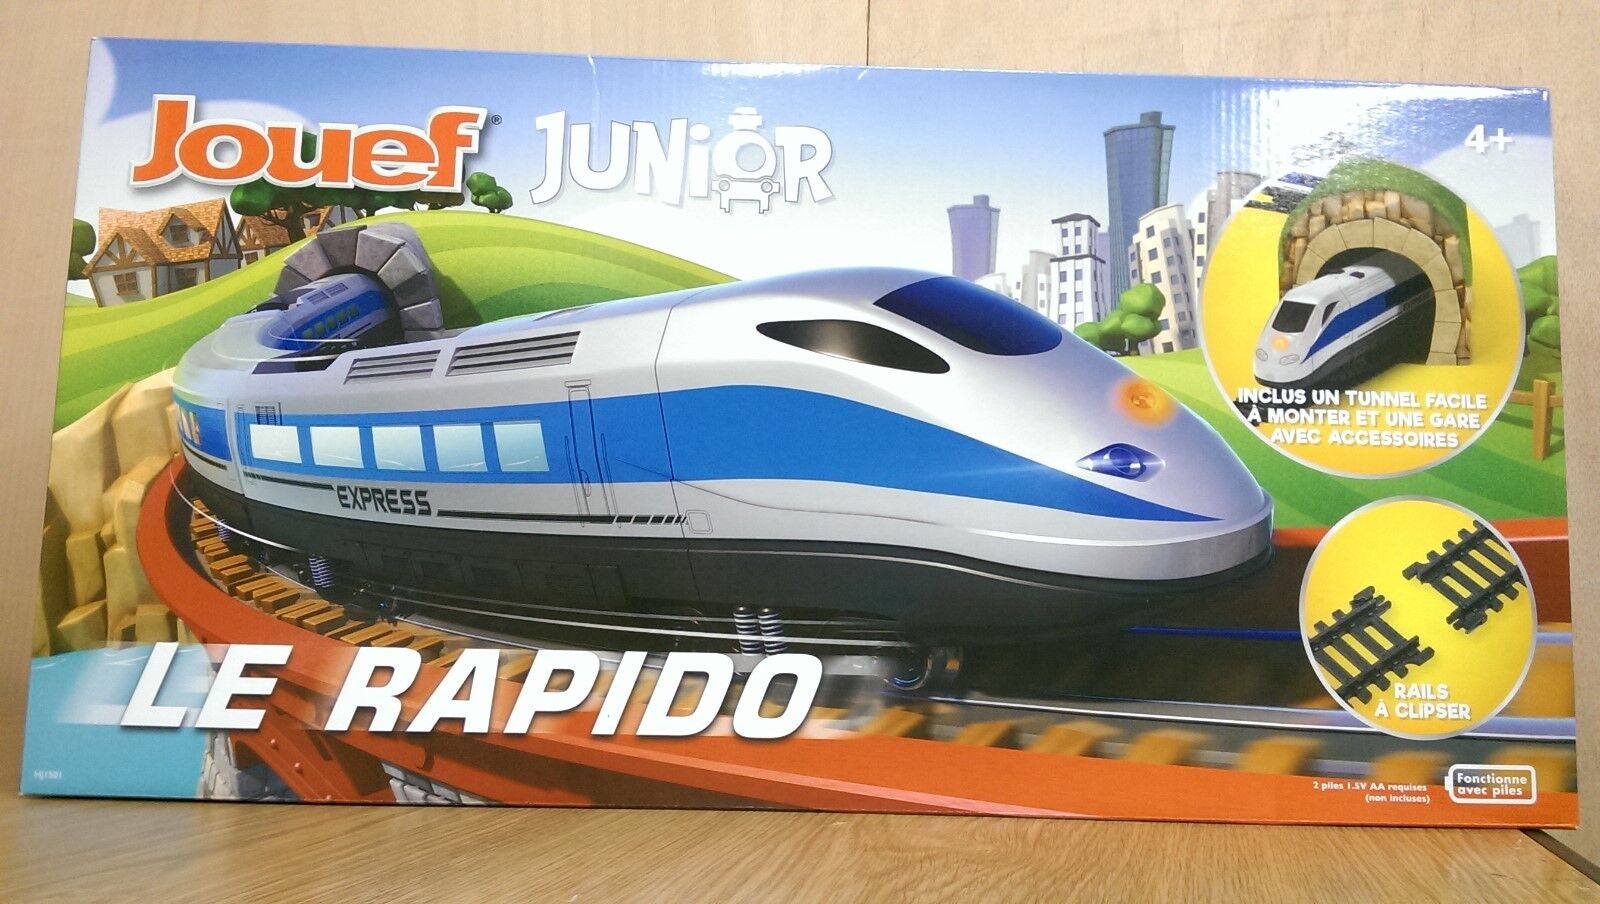 Jouef Junior HJ1501 Le Rapido Battery operated Train Set NEW